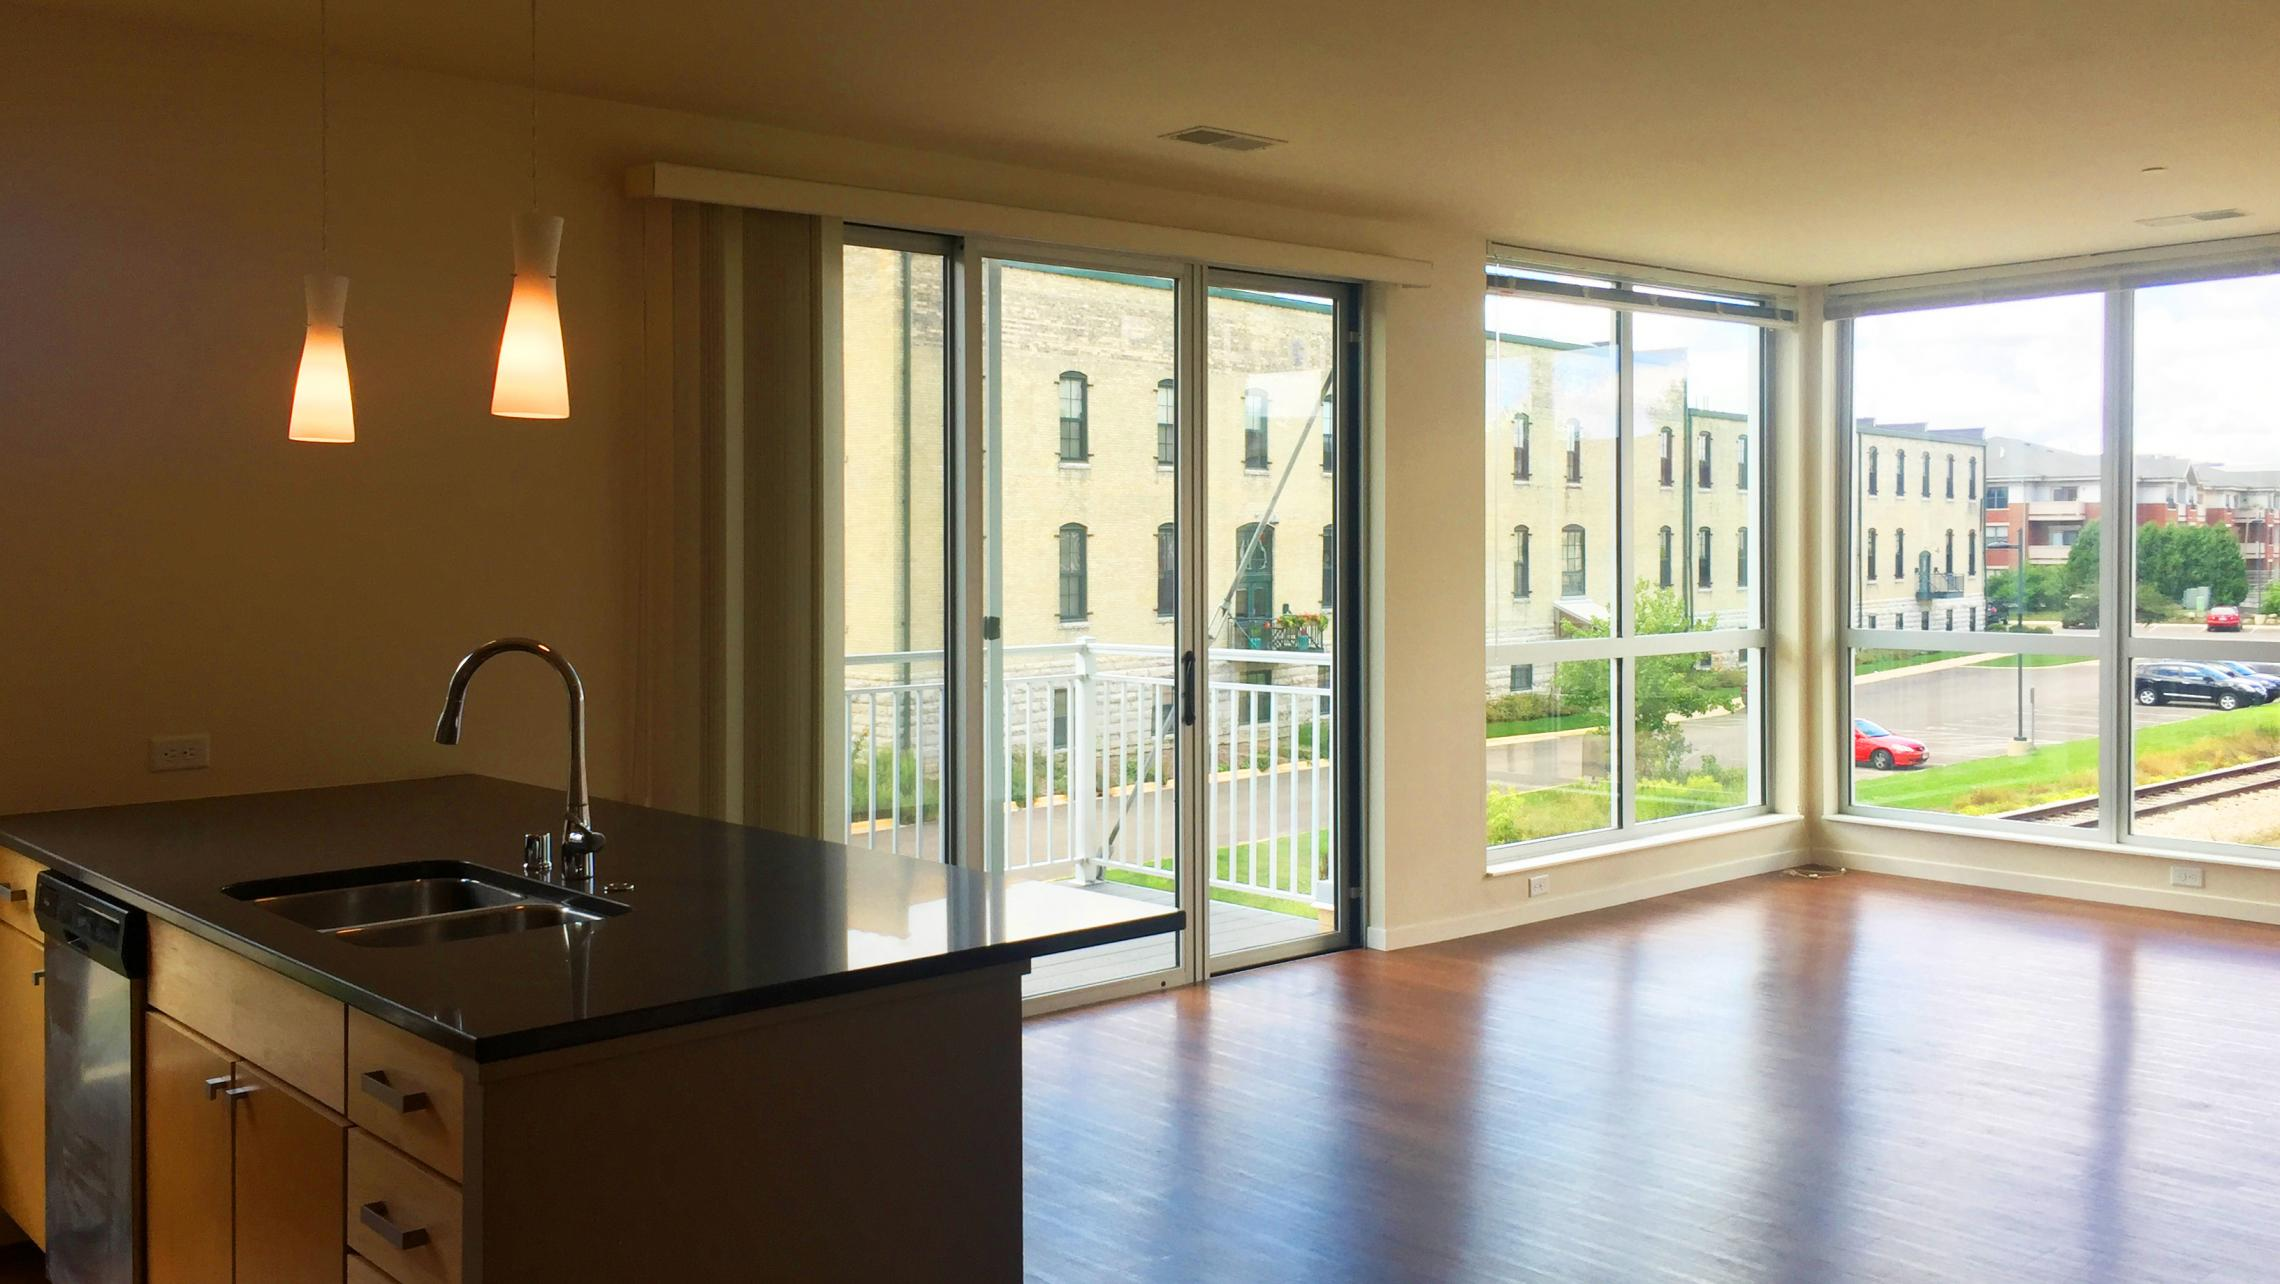 Nine-Line-at-The-Yards-Two-Bedroom-Apartment-214-Corner-Windows-Views-Stunning-Downtown-Madison-Bike-Path-Capitol-Lake-Modern-Upscale-Fitness-Gym-Dogs-Cats